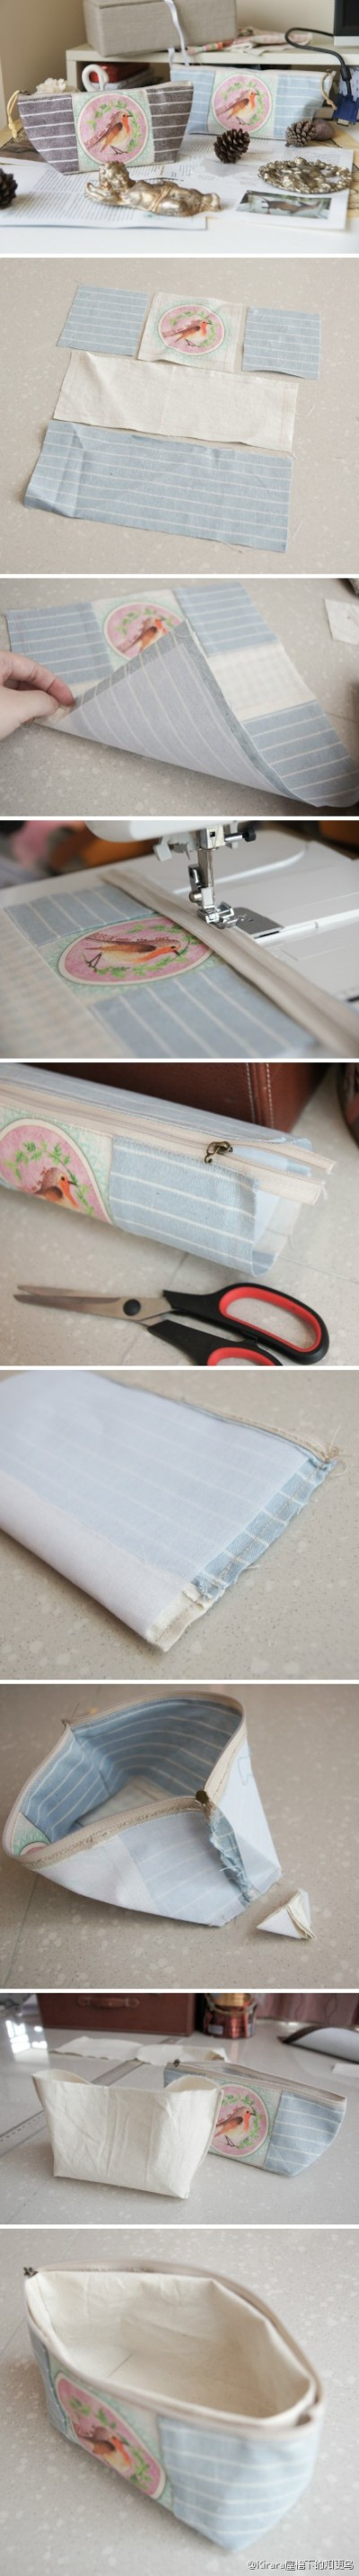 How to make cosmetic bag step by step DIY tutorial picture instructions